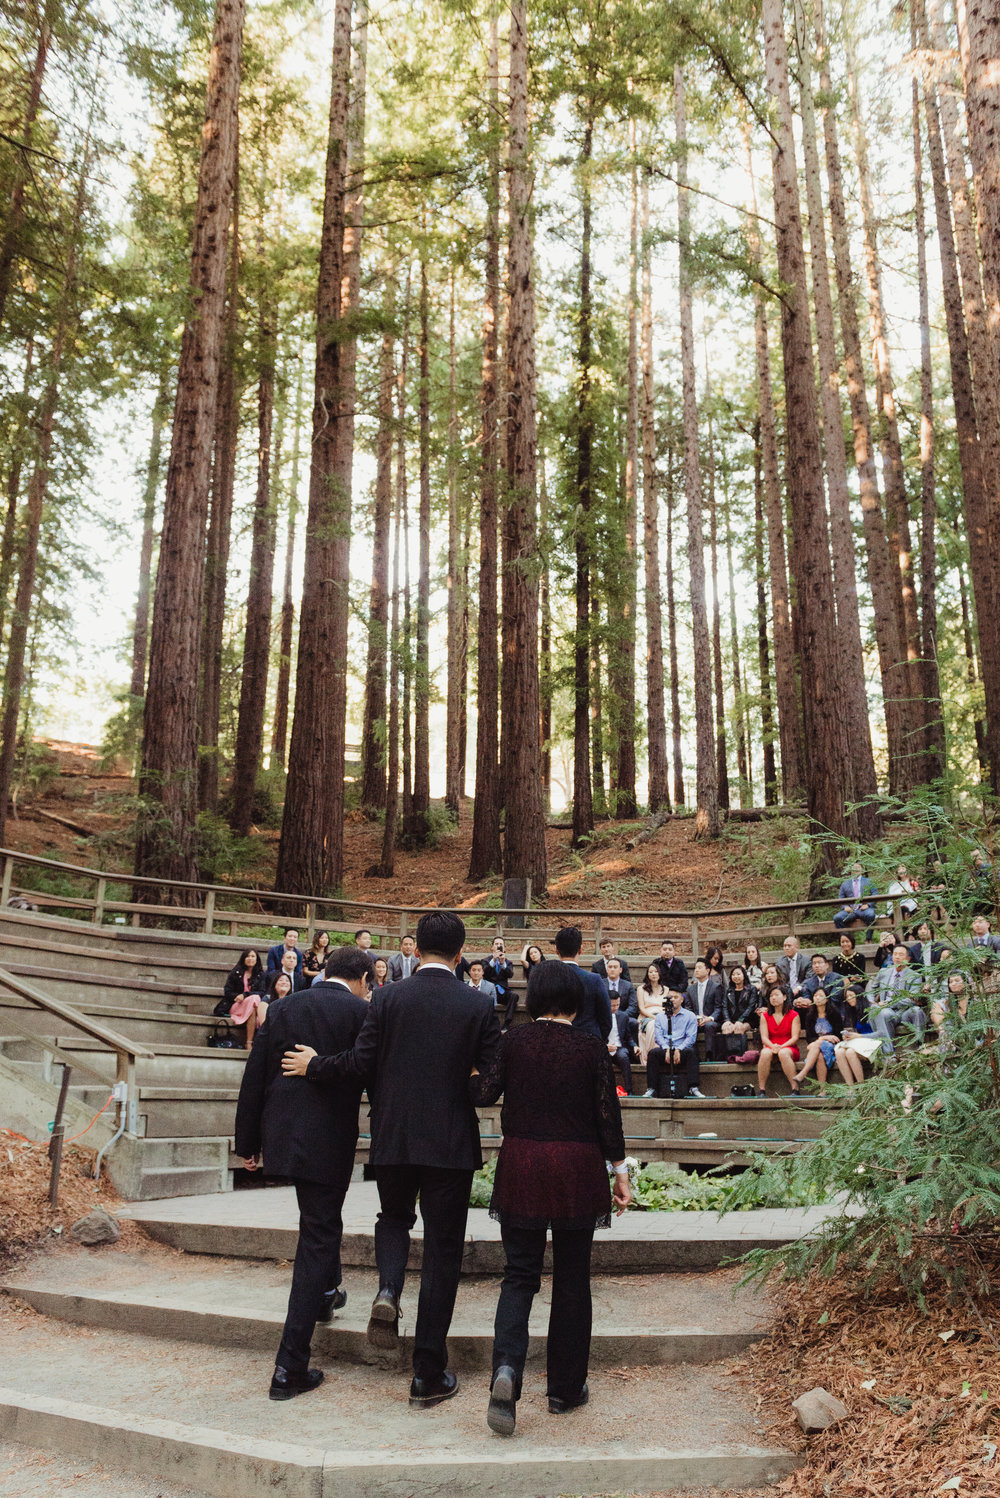 18-mather-redwood-grove-uc-botanical-garden-wedding-vivianchen-110.jpg